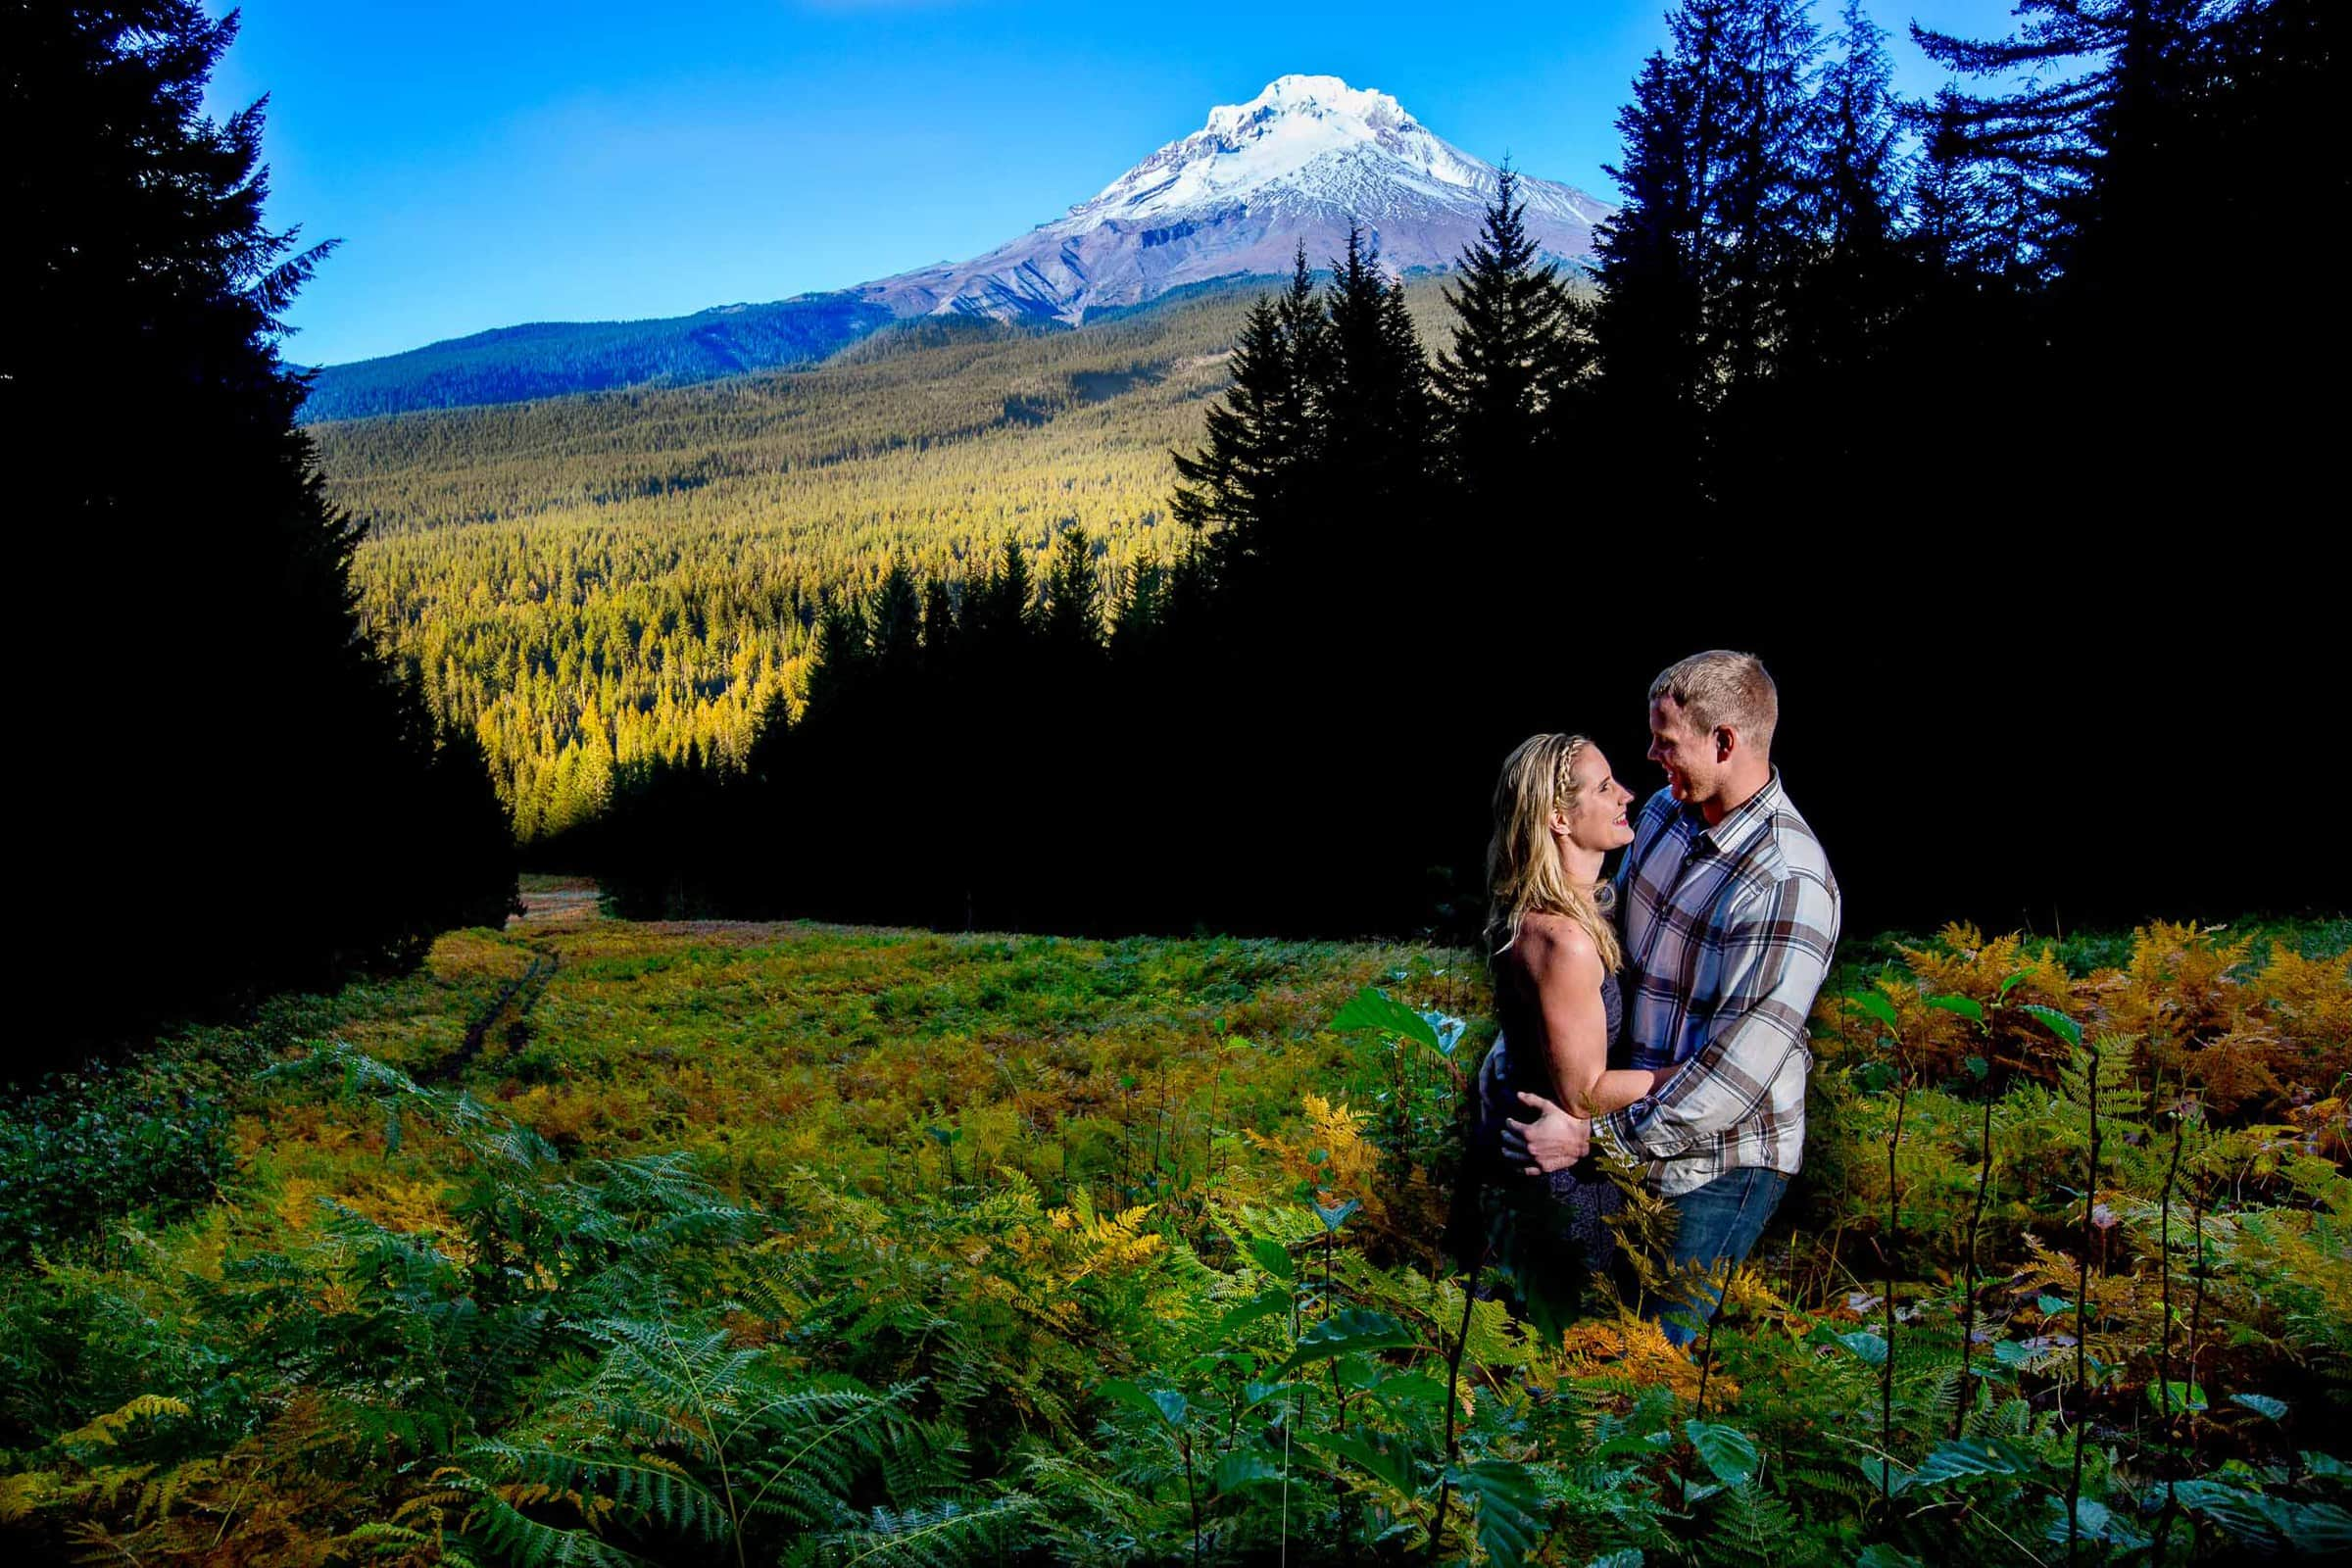 A magnificent fern field for a couples Mt Hood engagement photos